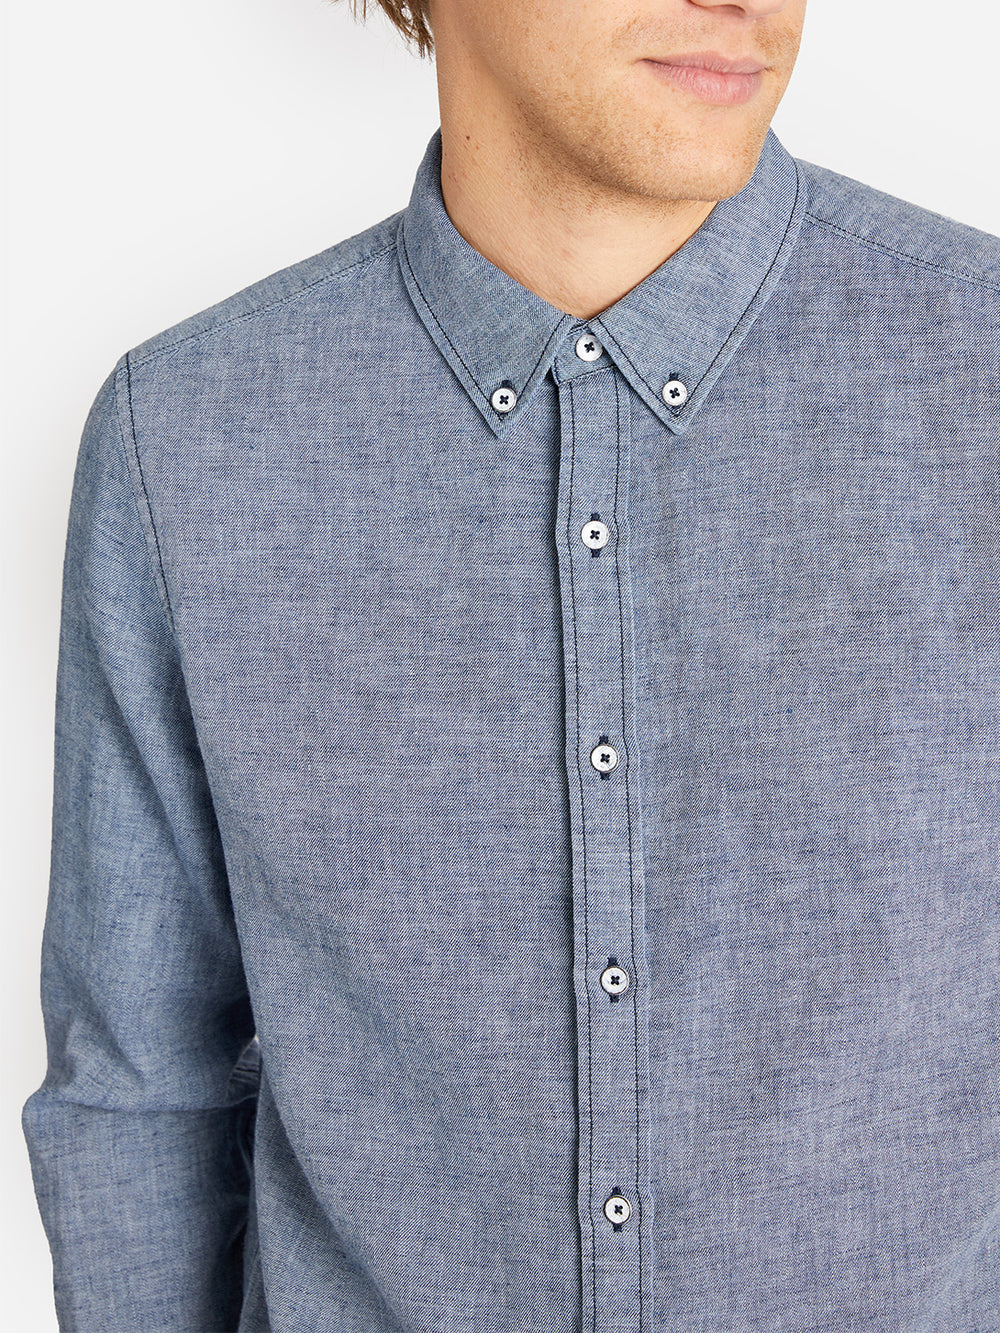 FULTON SHIRT ONS CLOTHING INDIGO